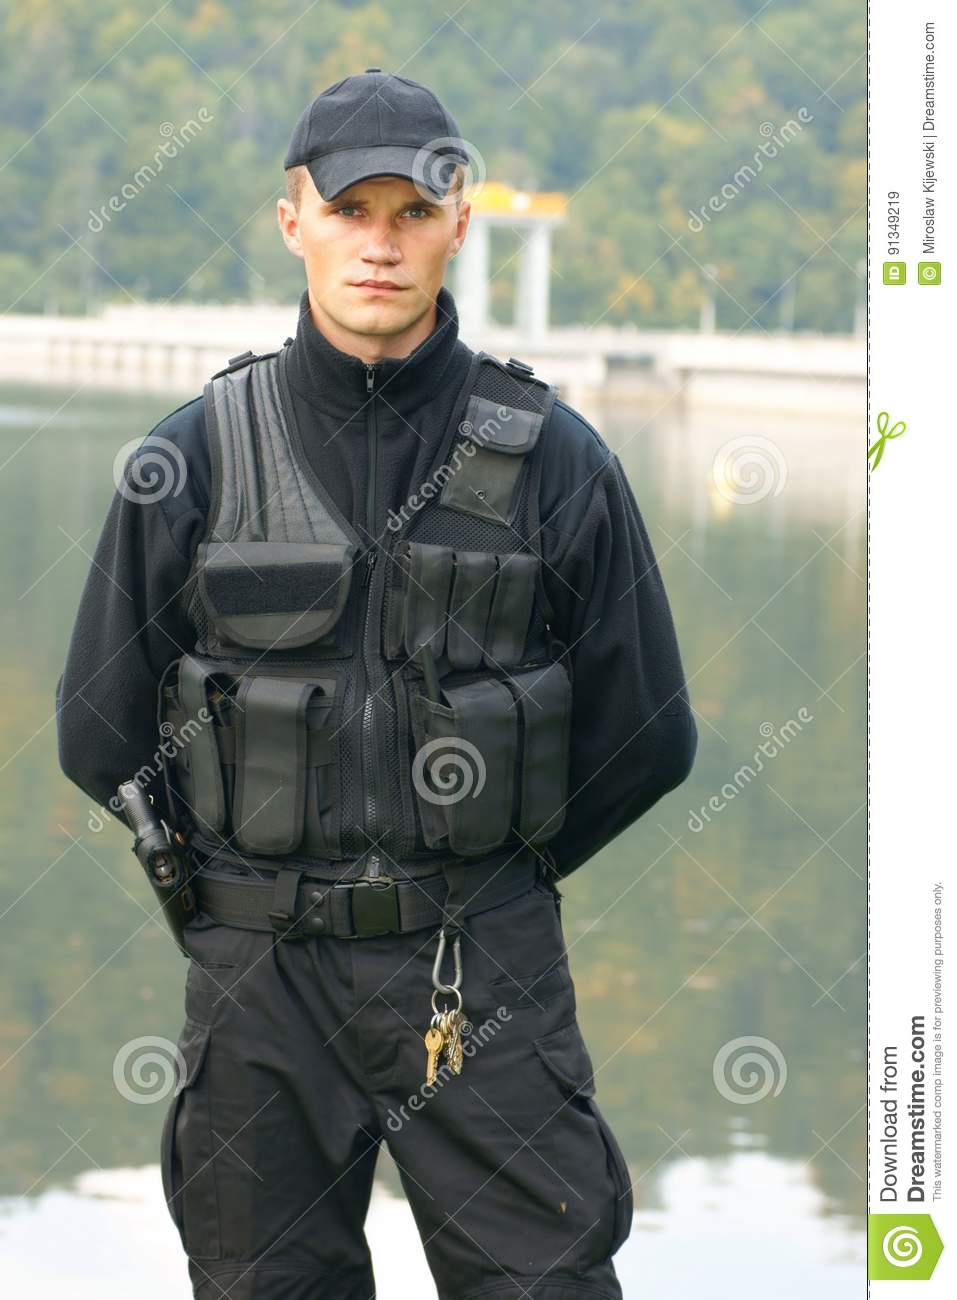 Level 3 Armed Security Guard